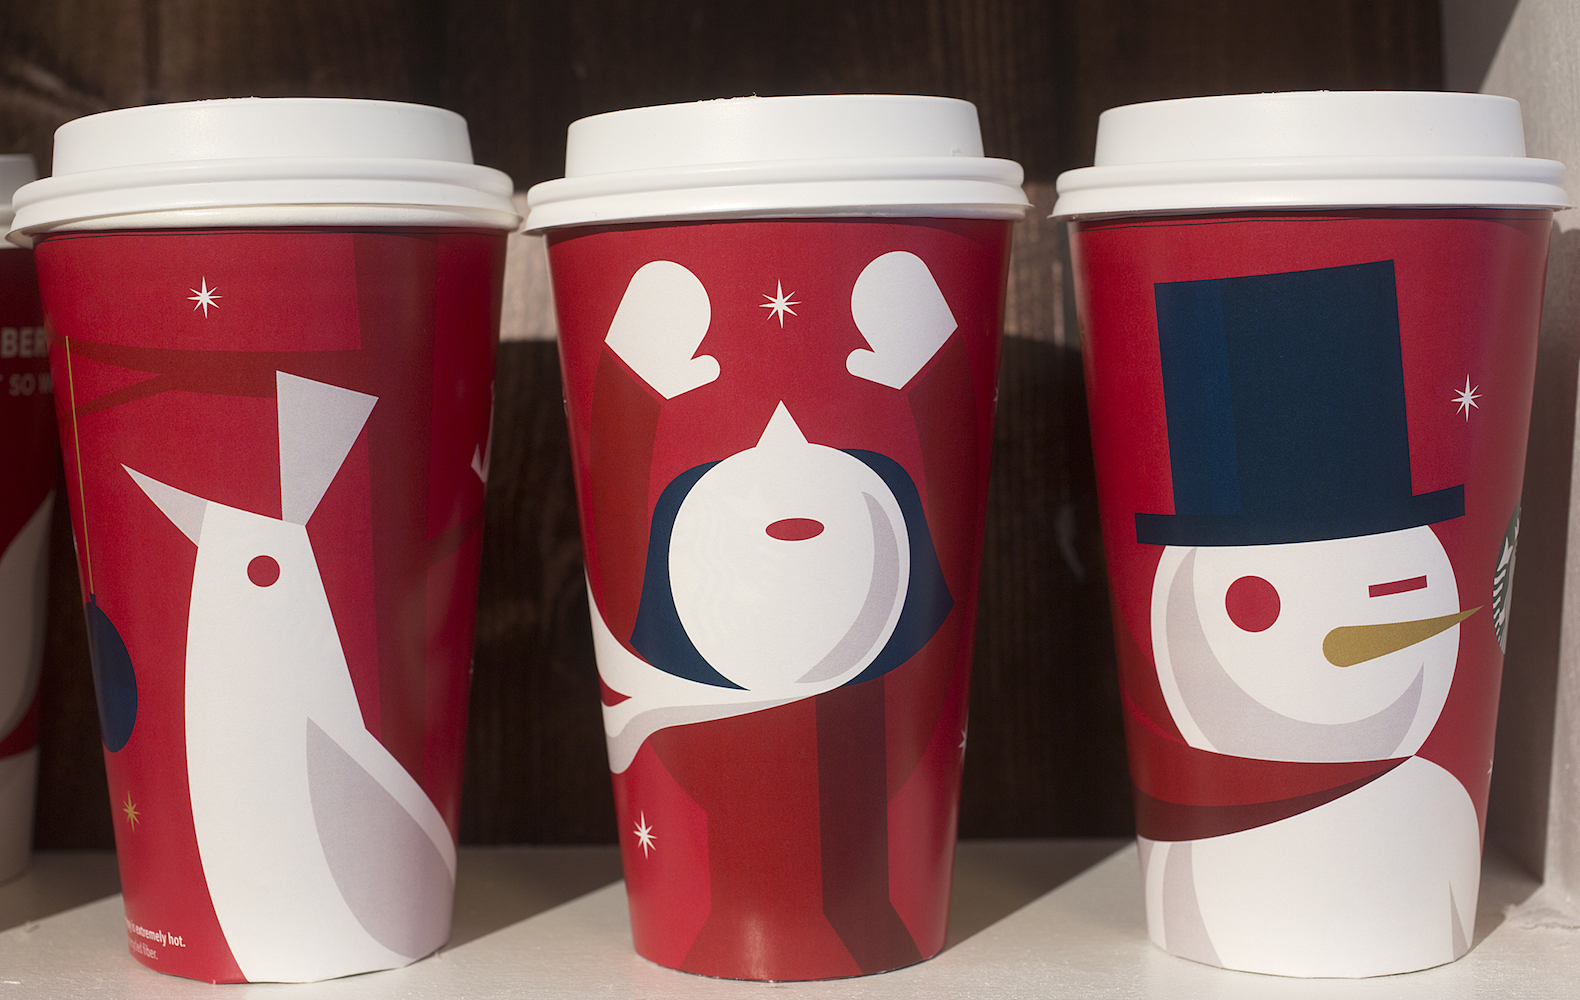 <div class='meta'><div class='origin-logo' data-origin='AP'></div><span class='caption-text' data-credit='AP Photo/Mark Lennihan'>Three Starbucks holiday cups from the 2012 holiday season are displayed, Thursday, Nov. 9, 2017, at a Starbucks in New York.</span></div>